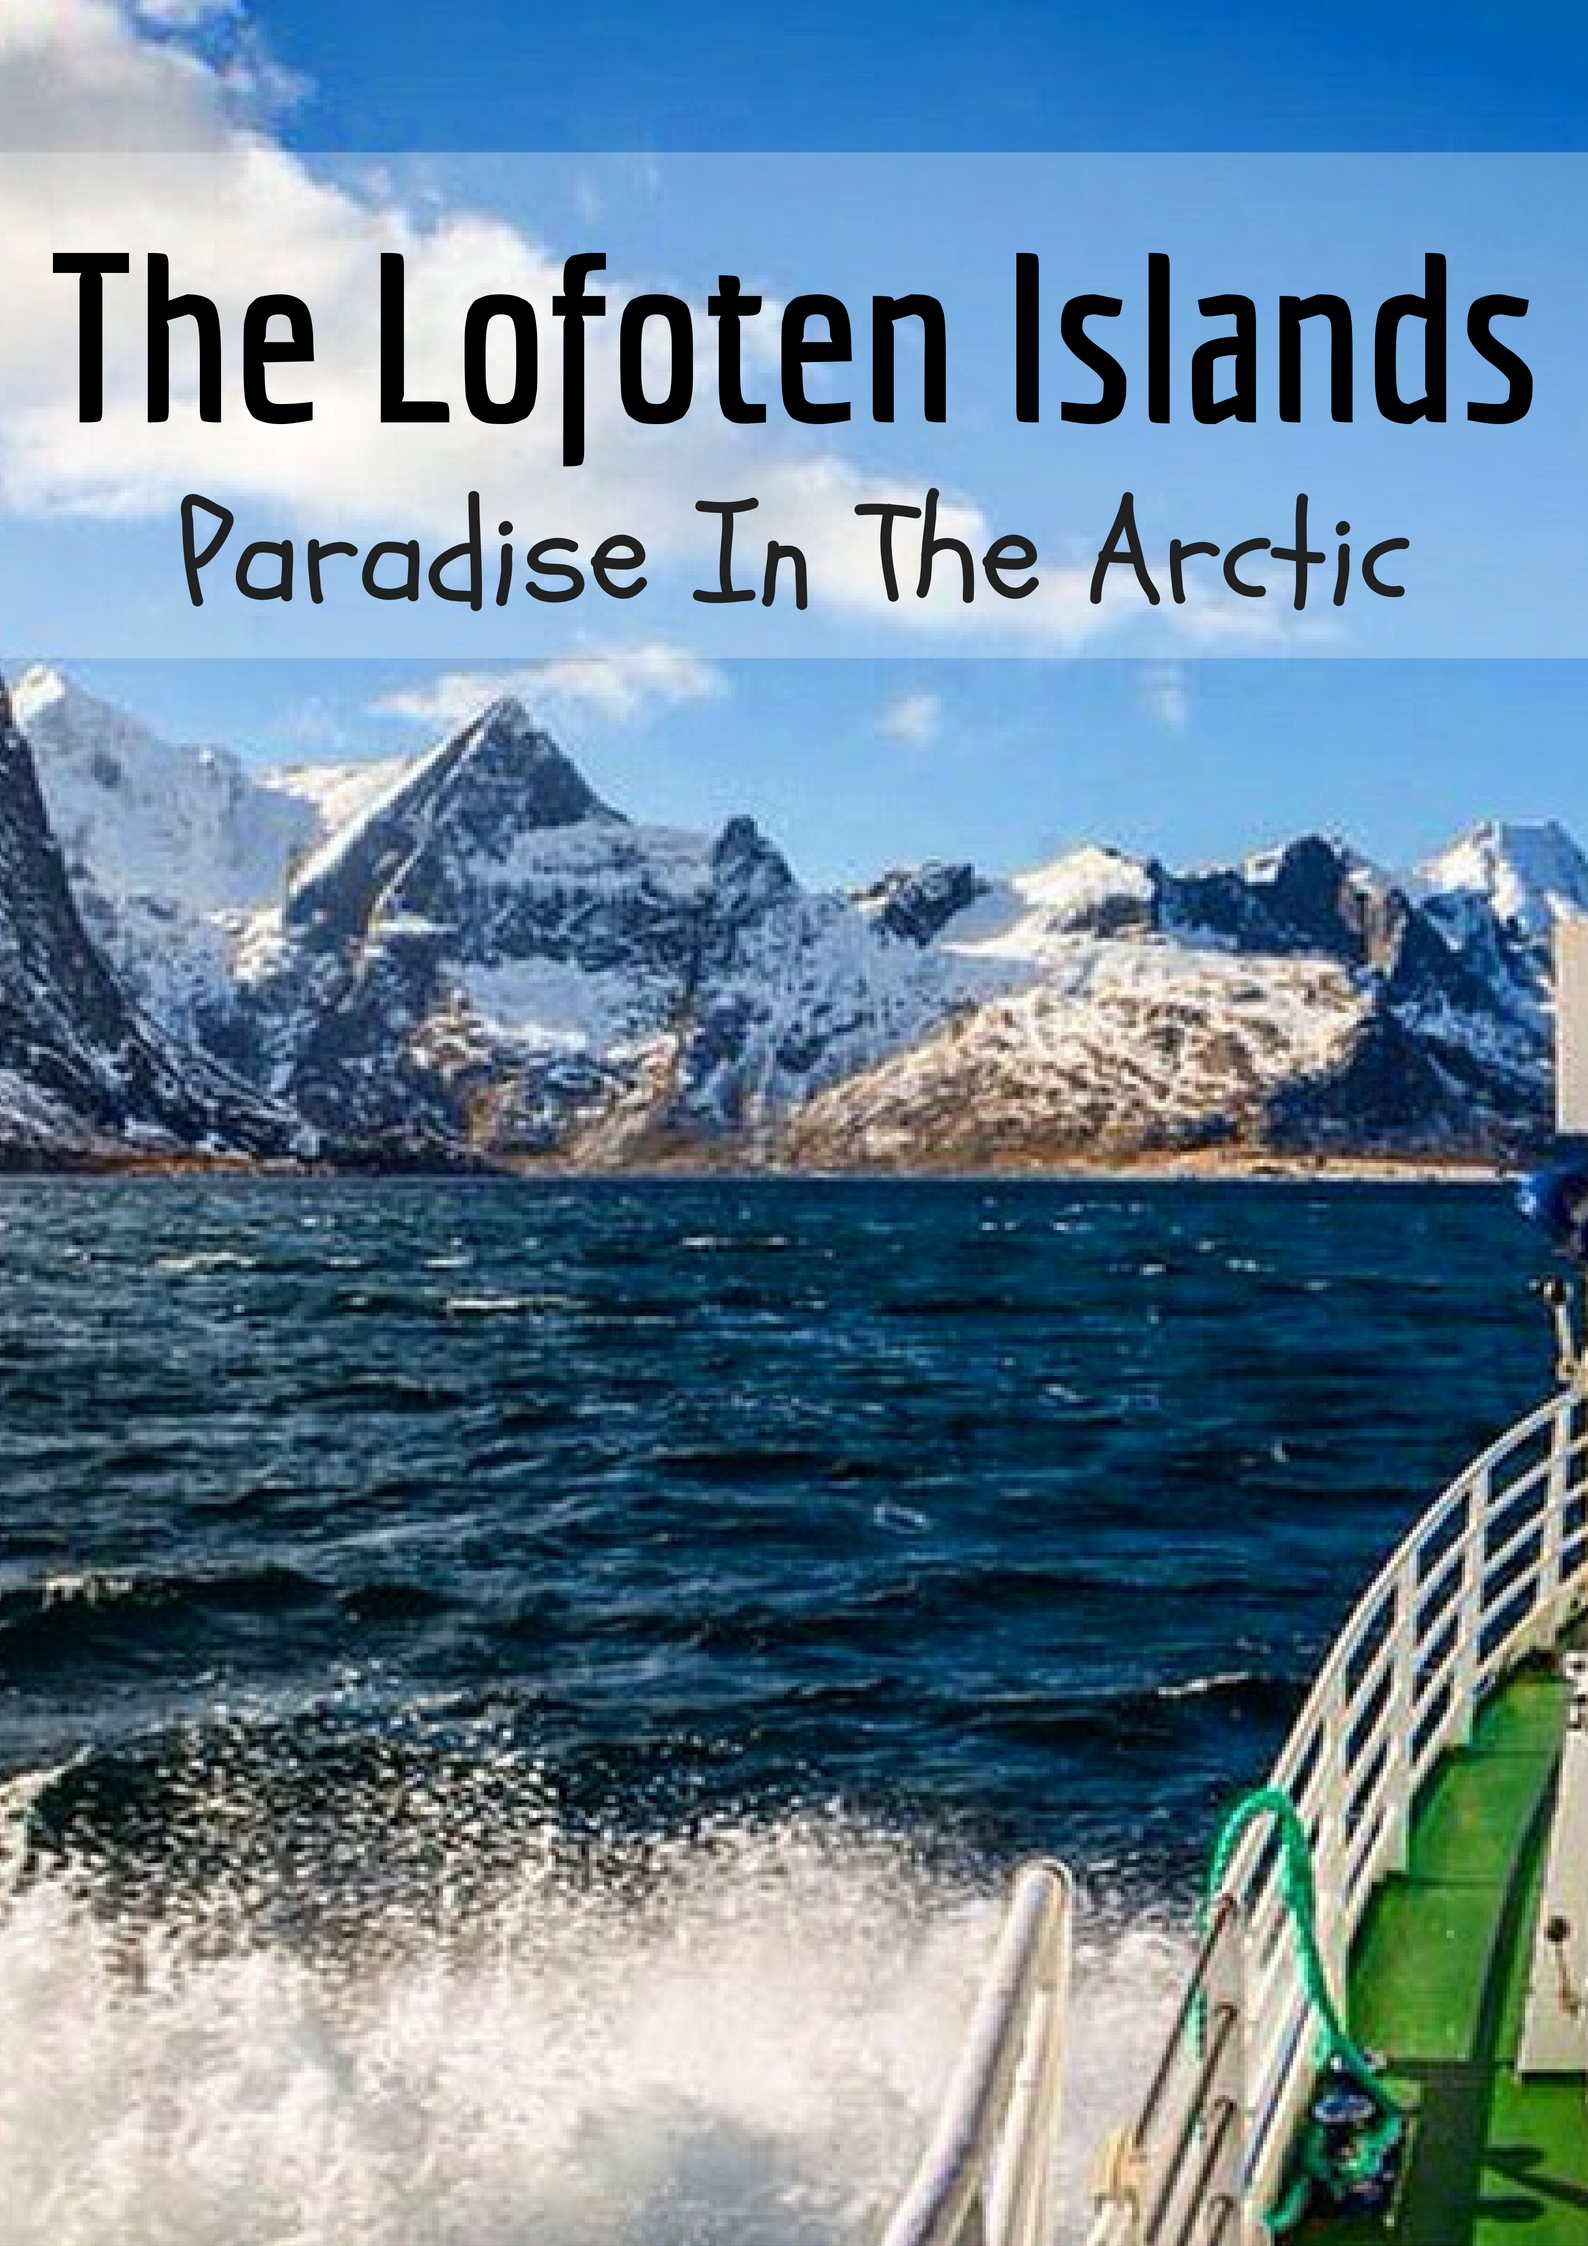 A Guide To The Lofoten Islands